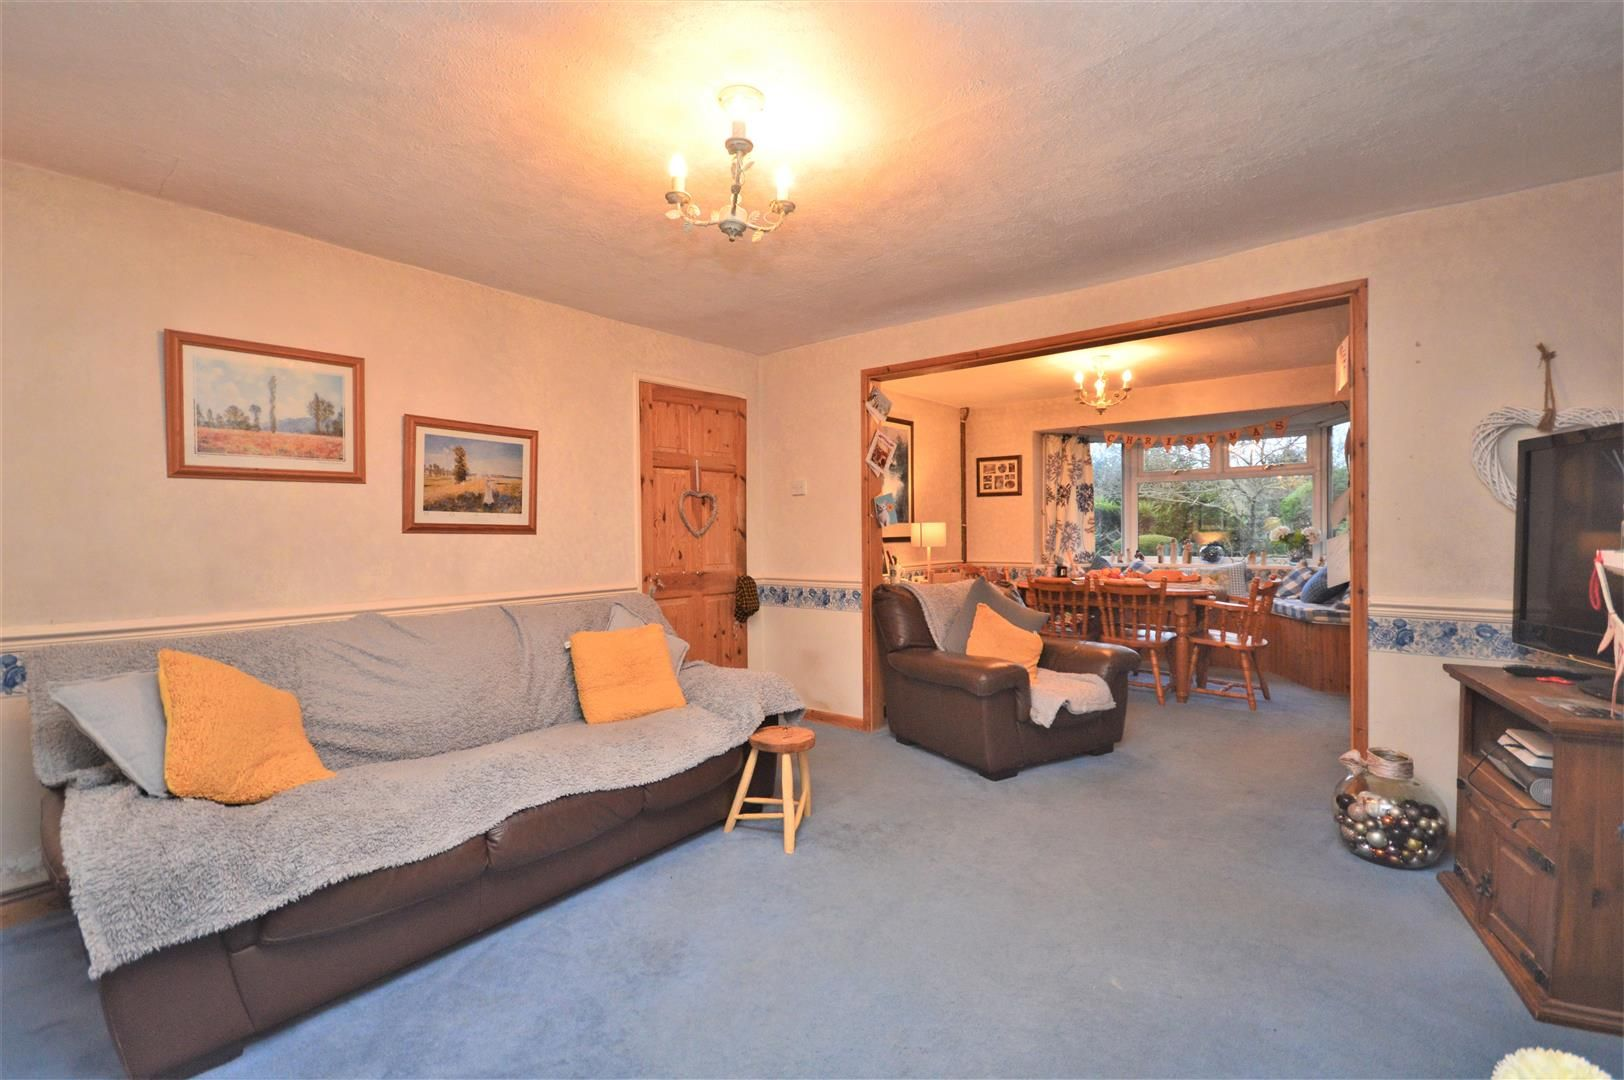 3 bed semi-detached for sale in Much Birch  - Property Image 2